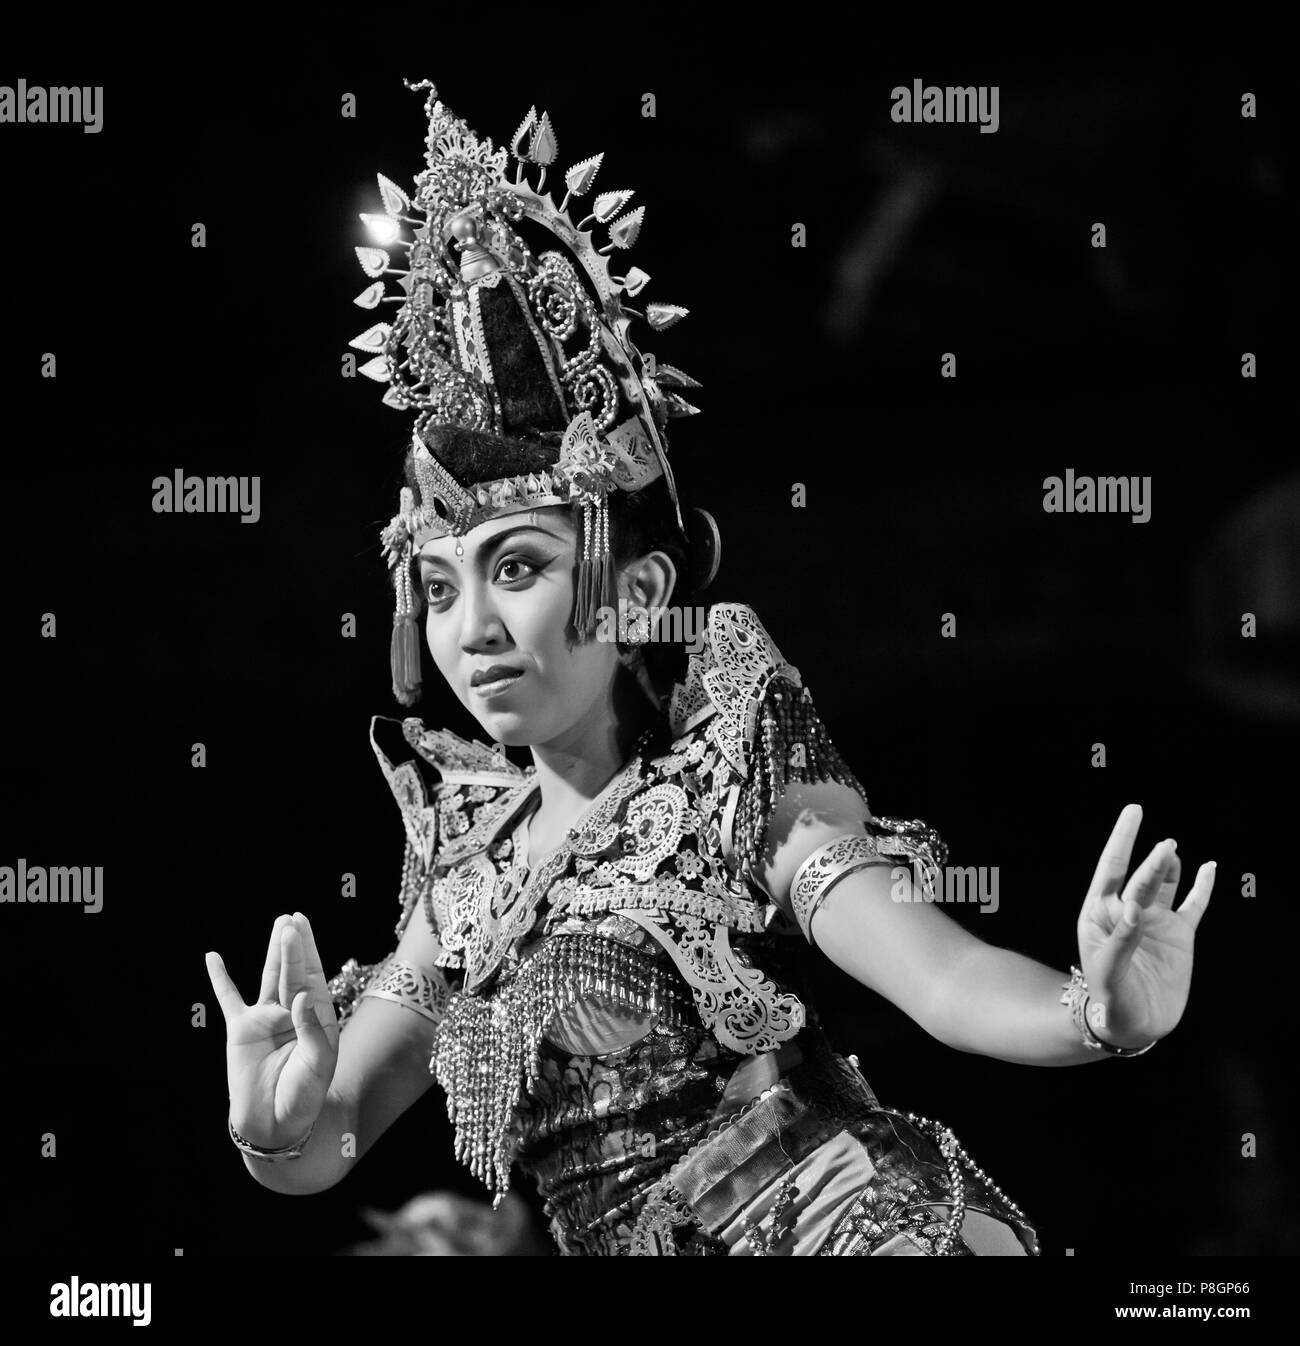 The KEBYAR DUDUK DANCE is performed by the Cenik Wayah Gamelan Dance Group at PURA TAMAN SARASWATI - UBUD, BALI, INDONESIA - Stock Image